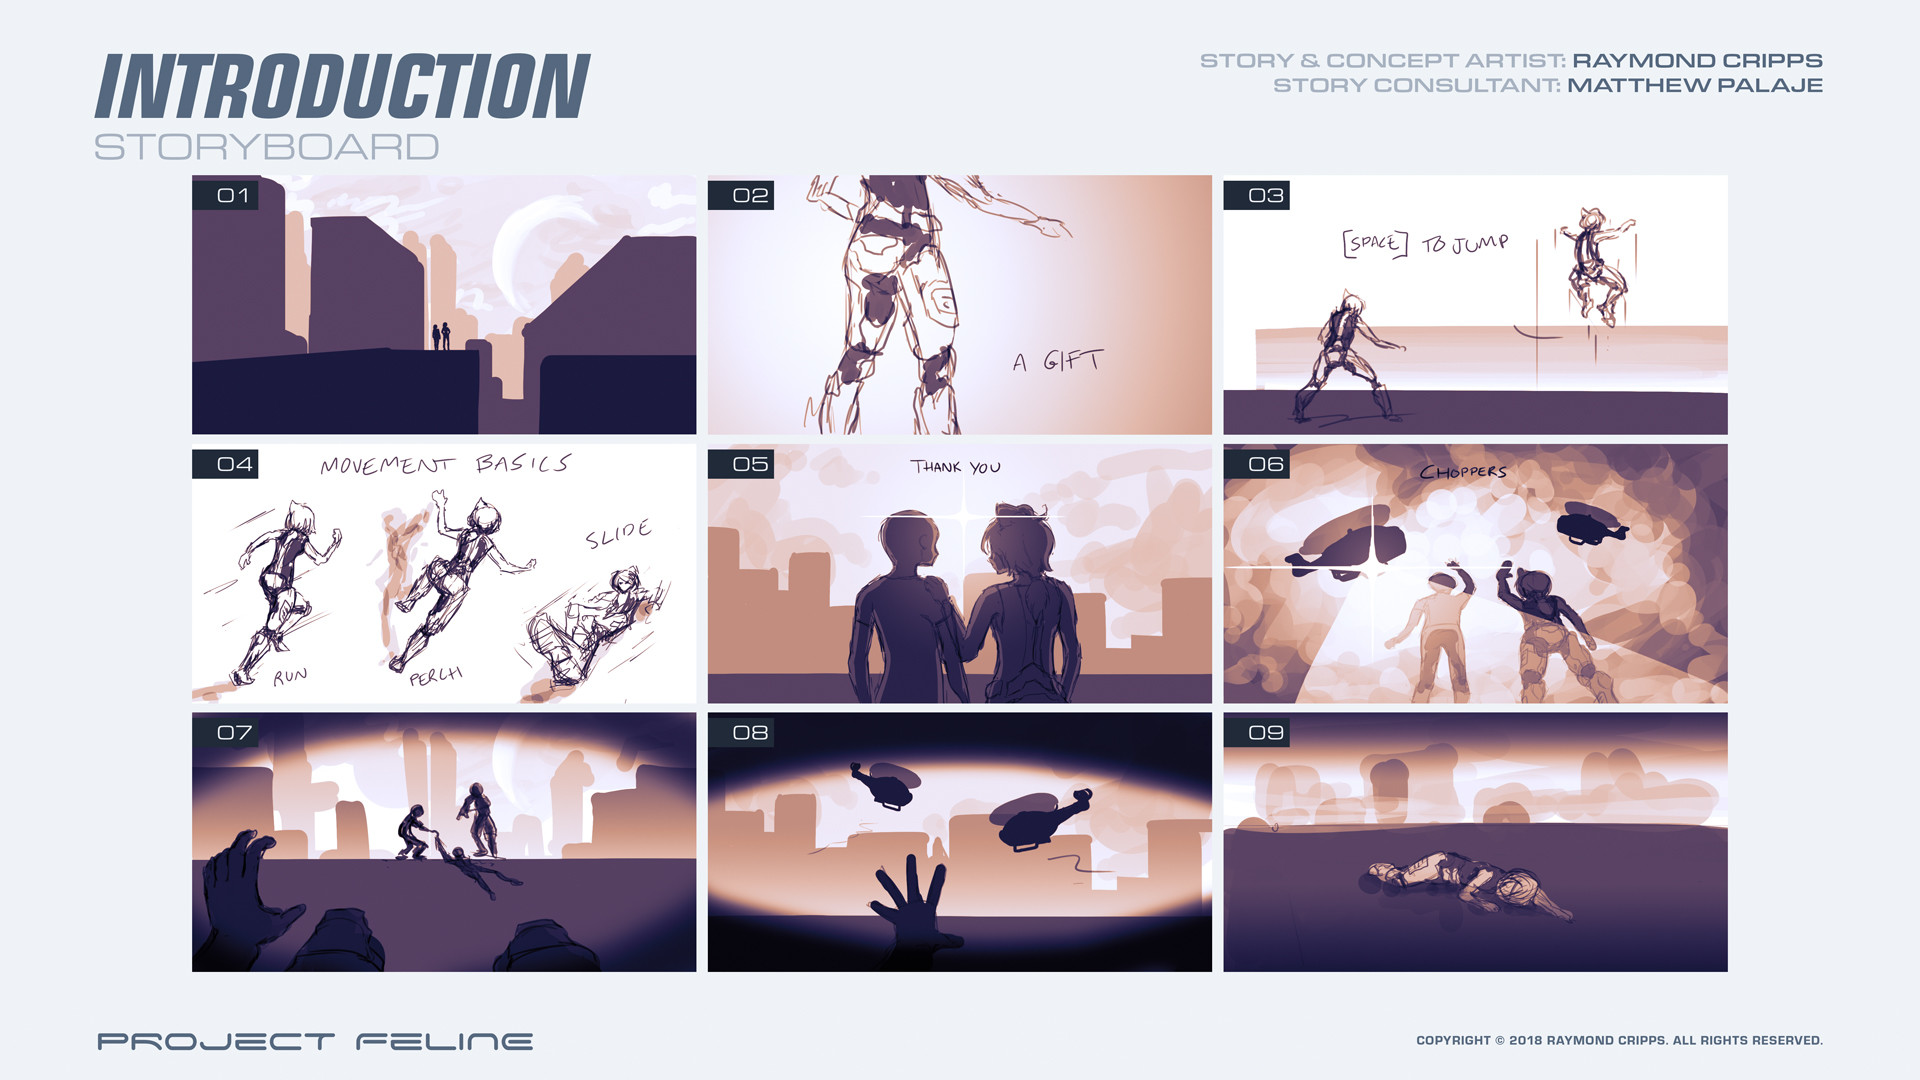 Raymond cripps introduction storyboard